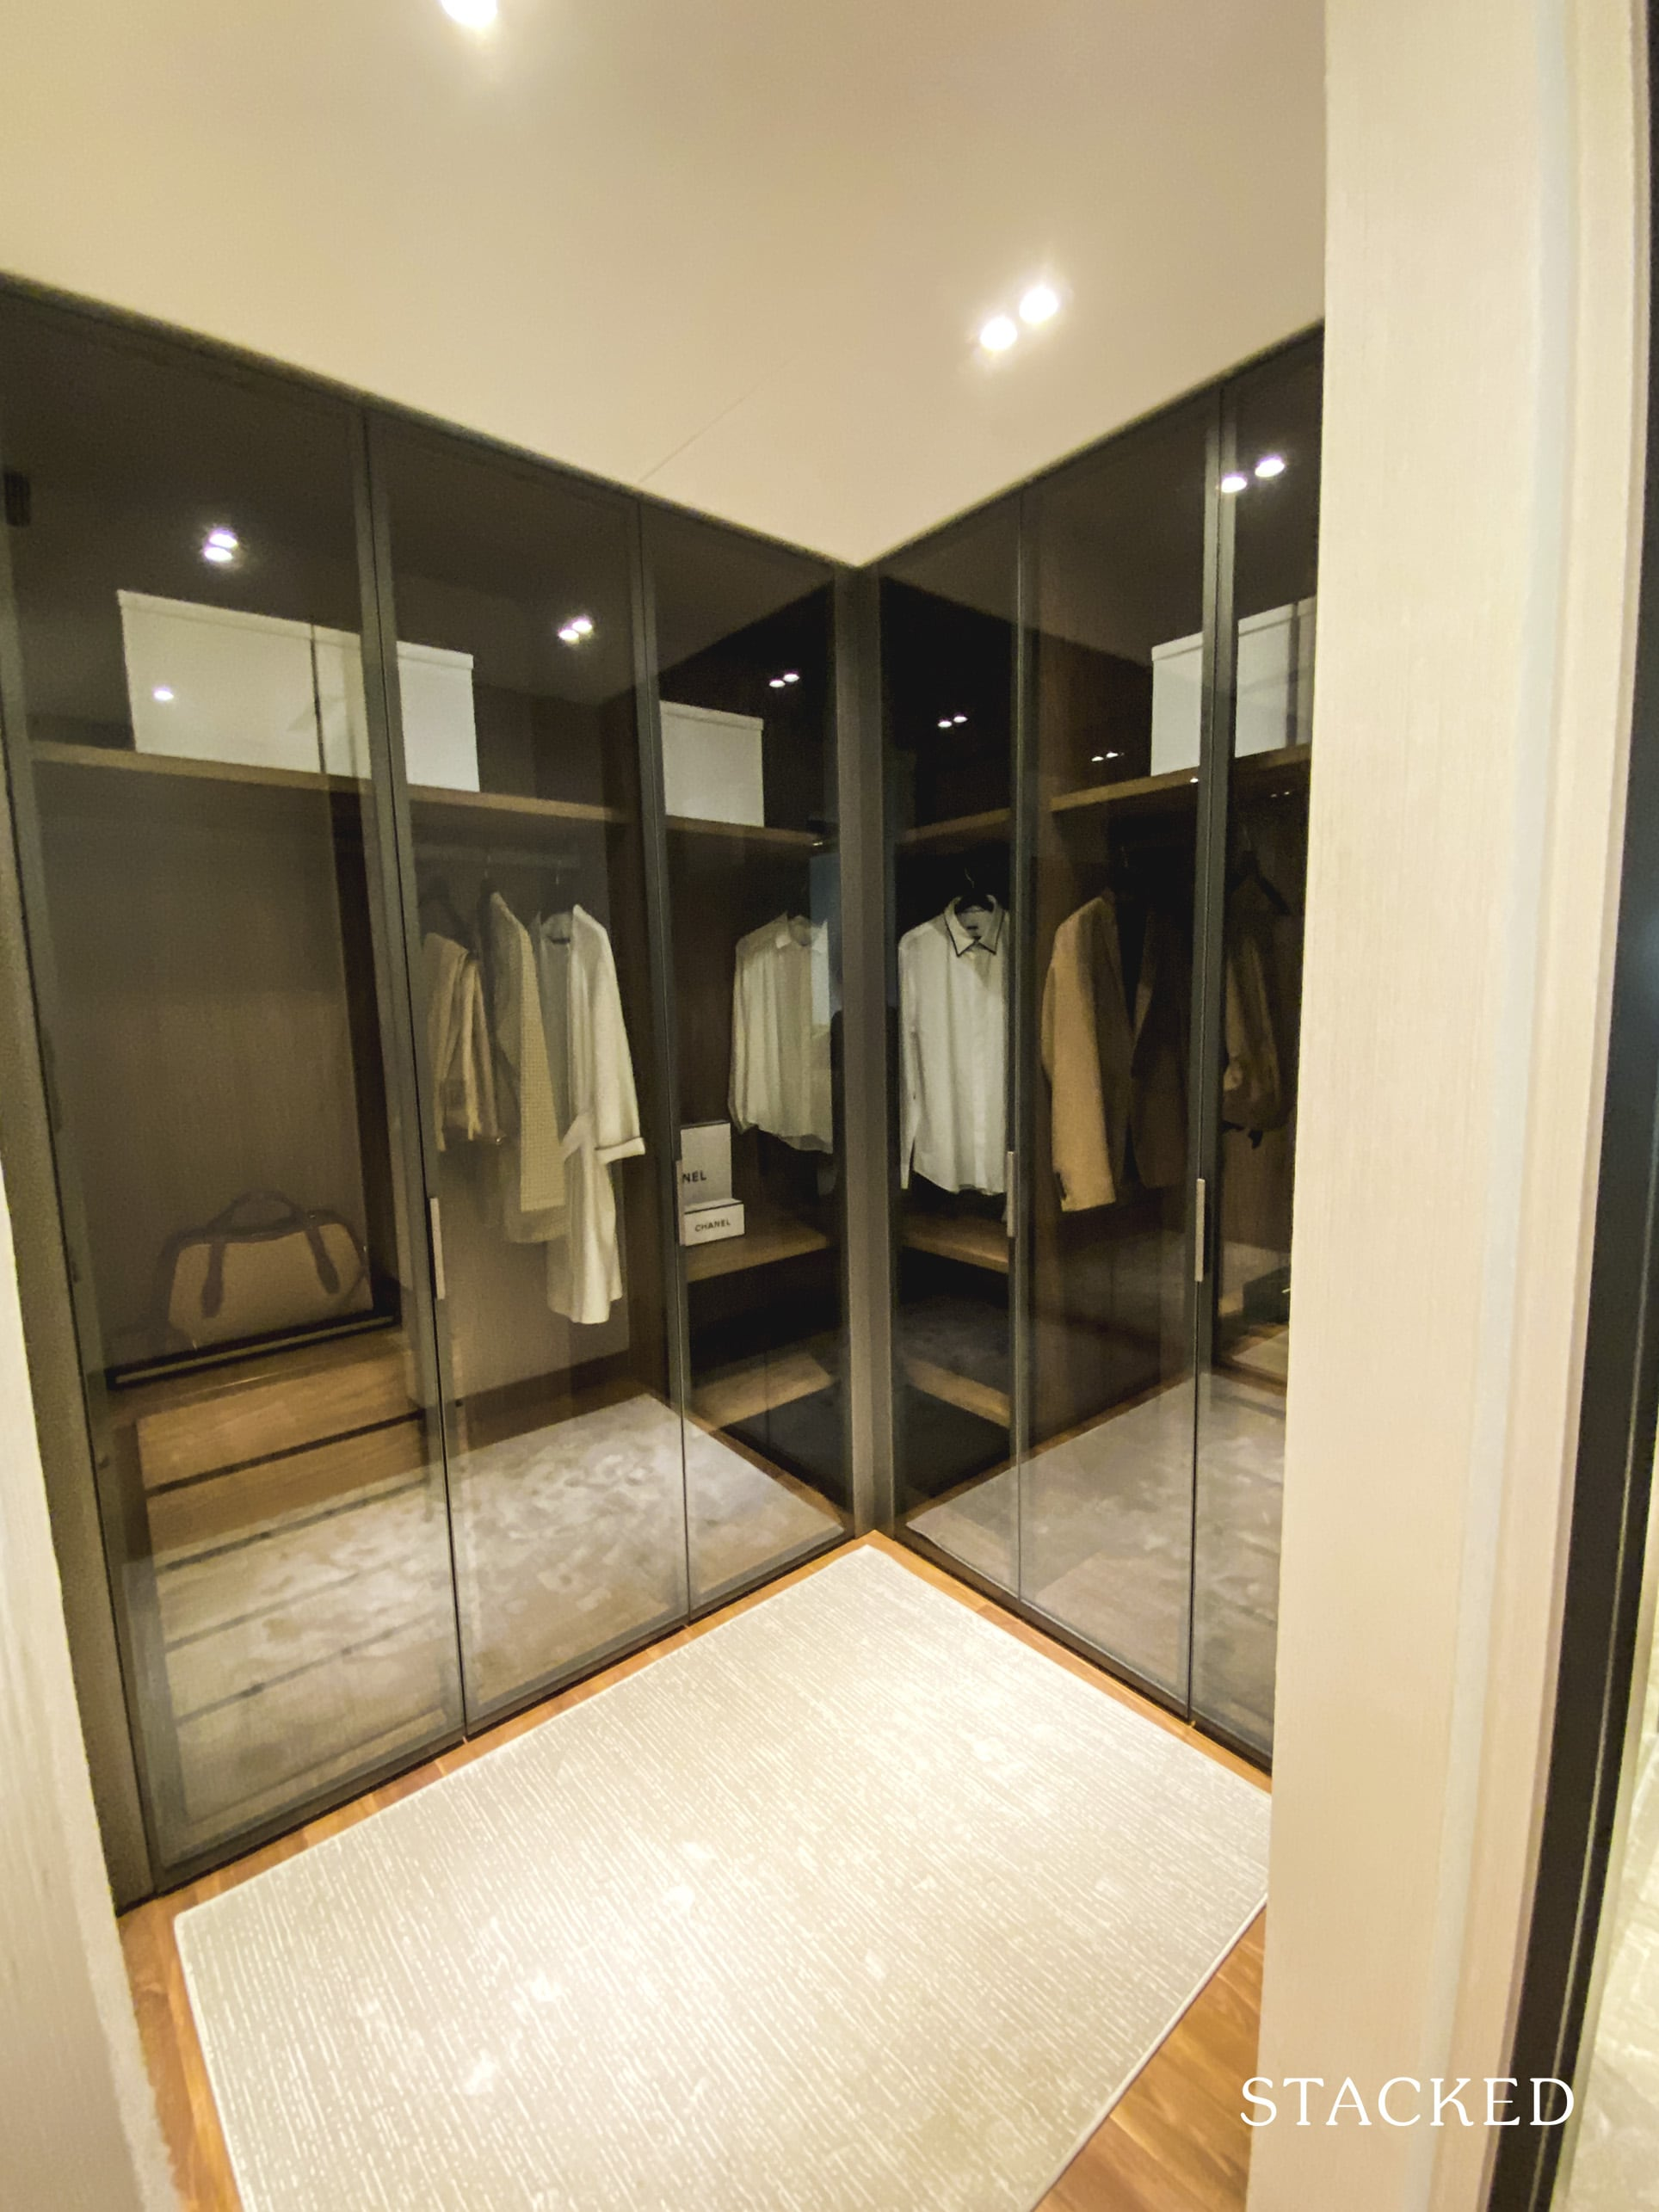 boulevard 88 walk-in wardrobe